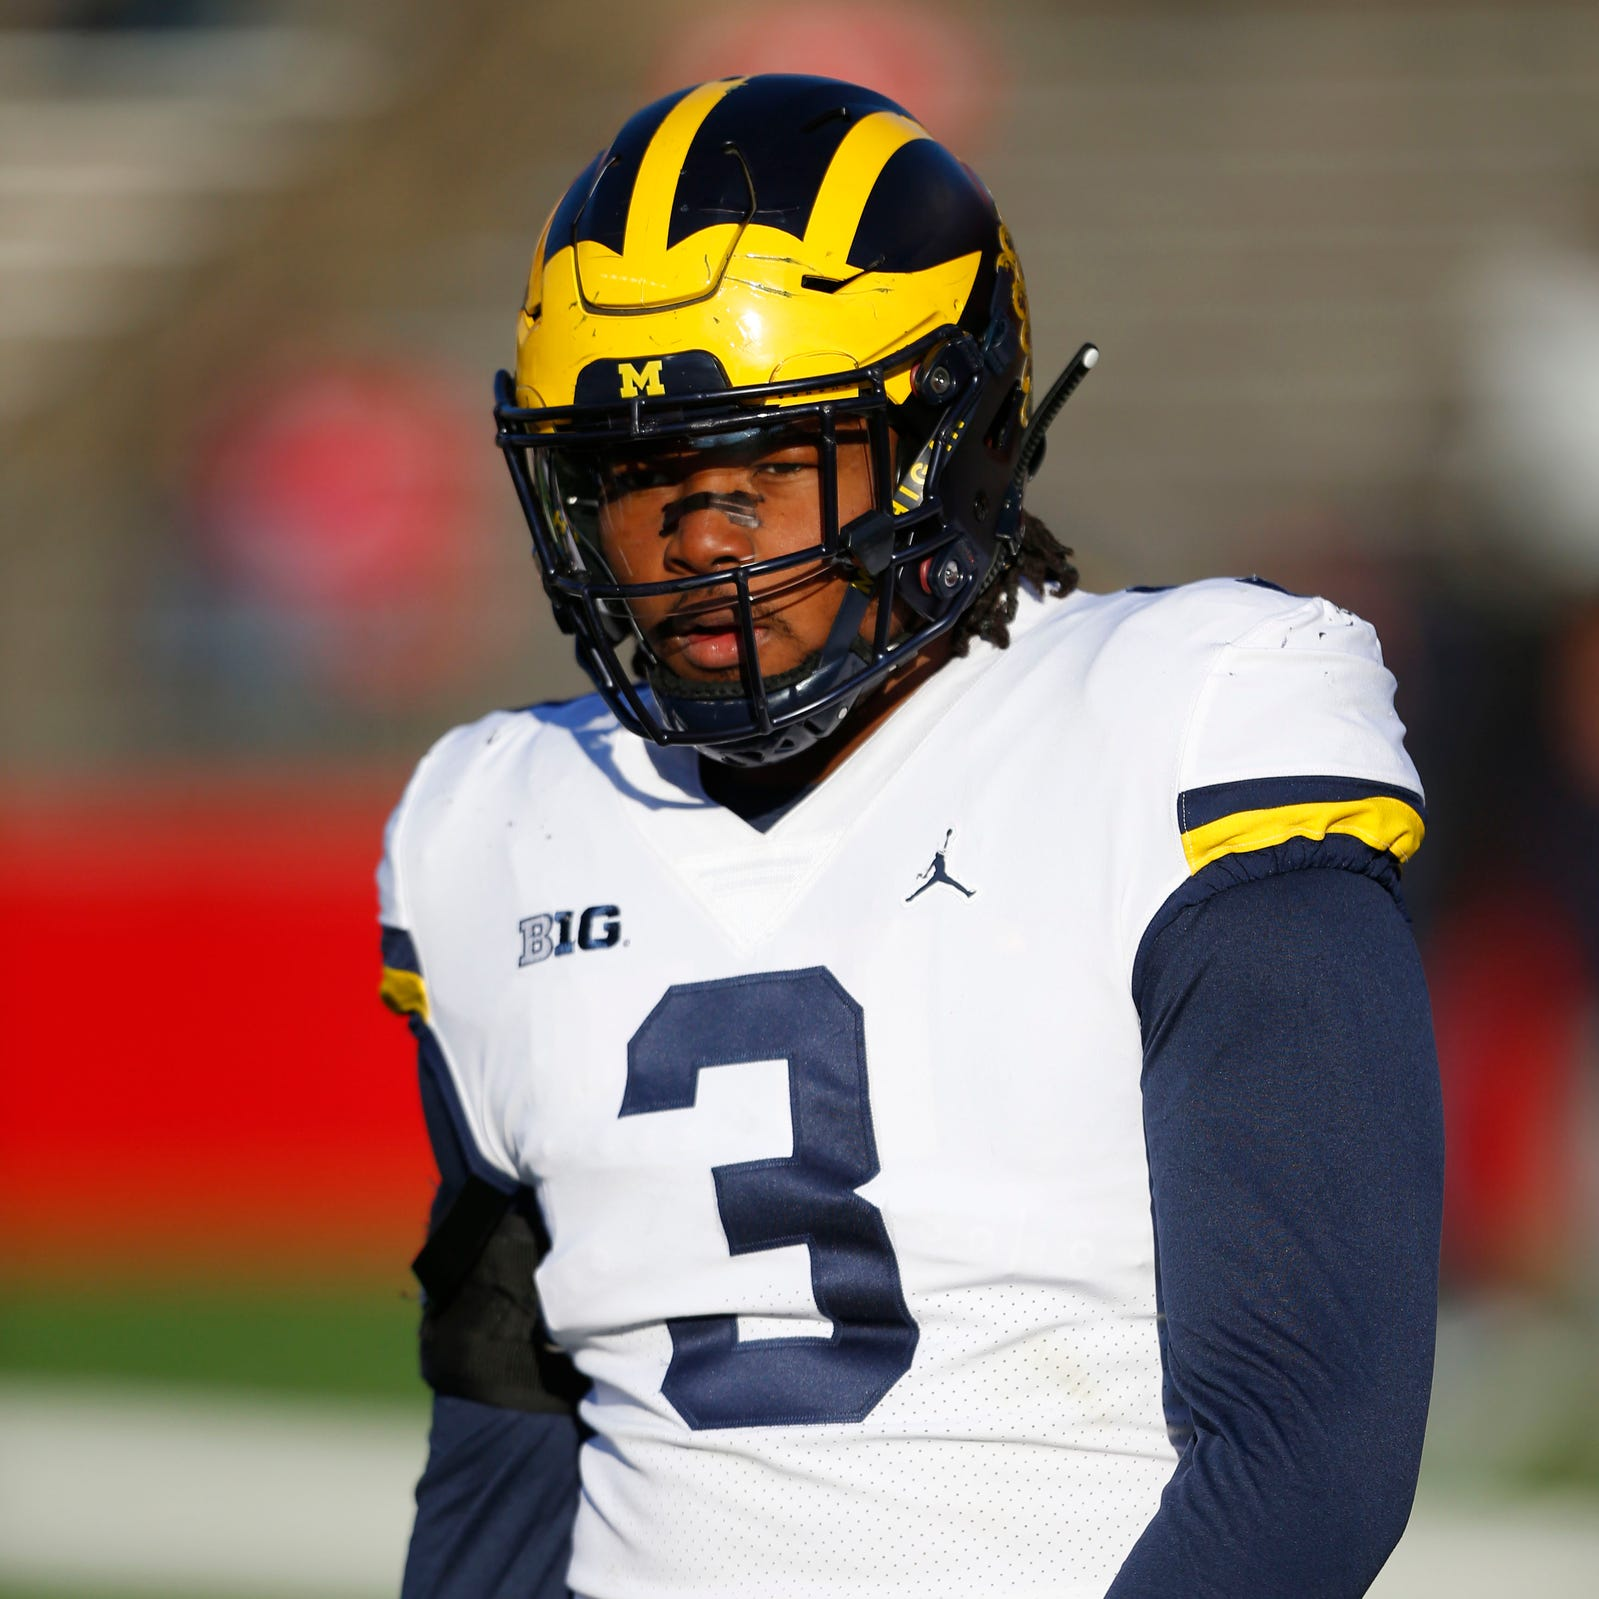 Michigan's Rashan Gary starts own sports agency: 'Going to change the game'